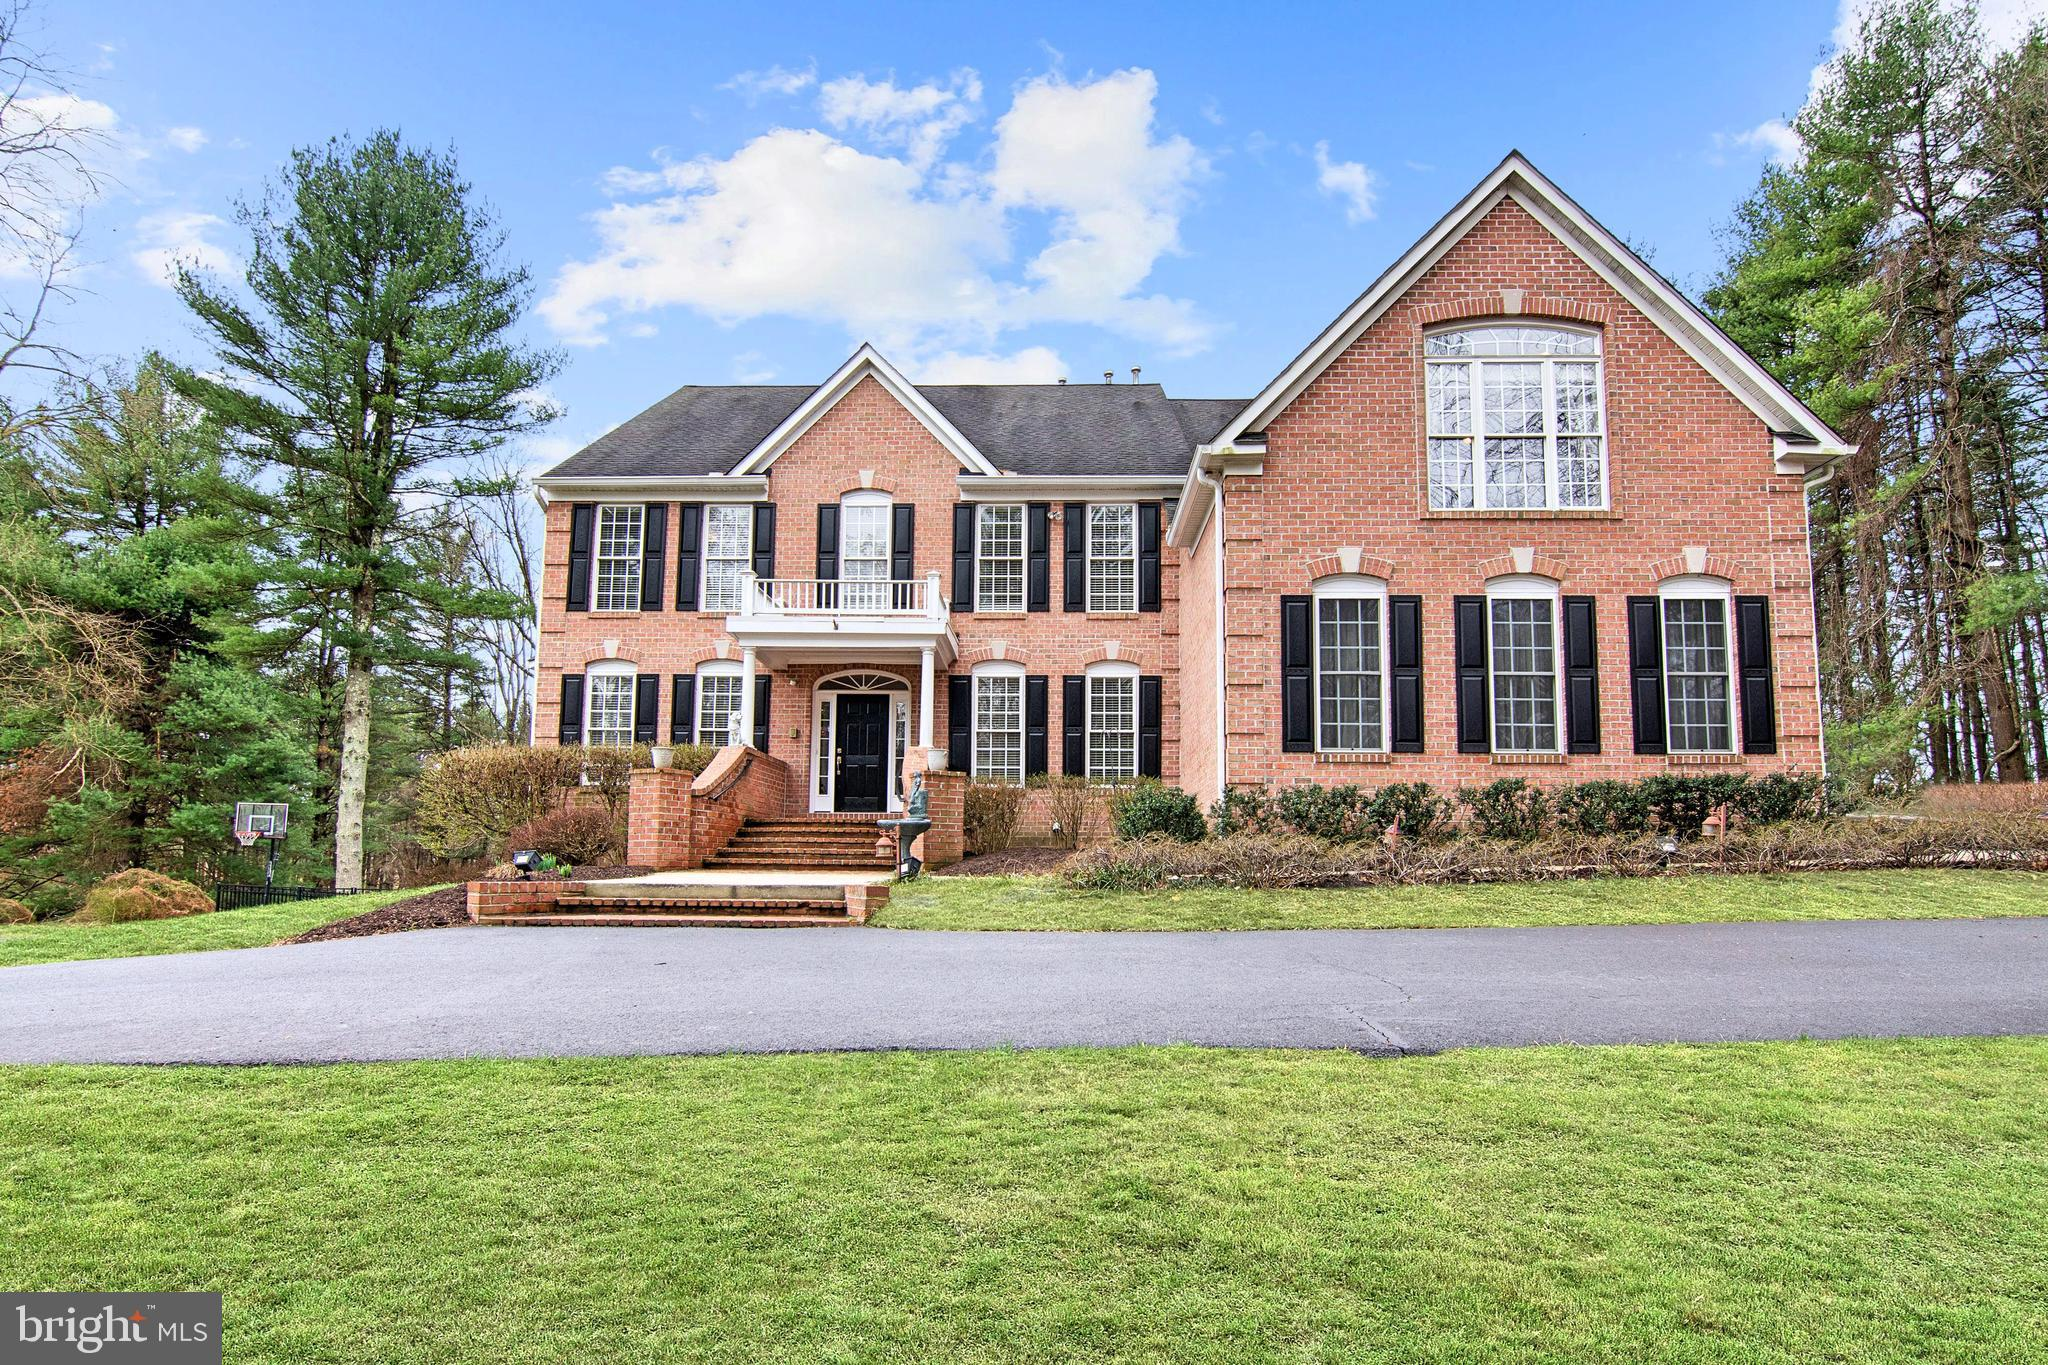 14 PINE HILL COURT, WOODSTOCK, MD 21163